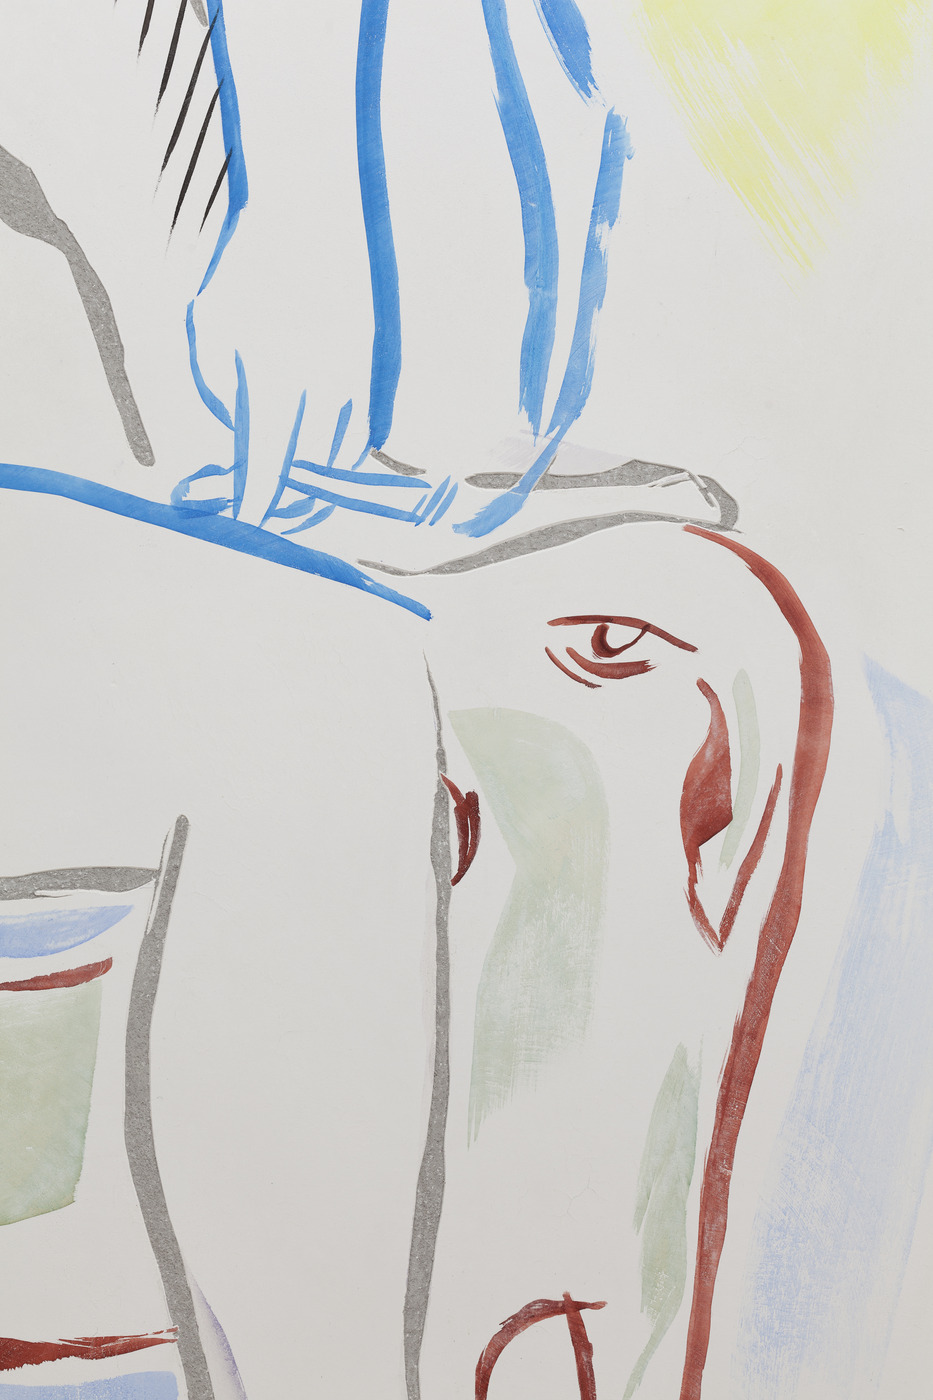 3. Camille Henrot, It is a Poor Heart That Never Rejoinces.Fresco, detail, 2016